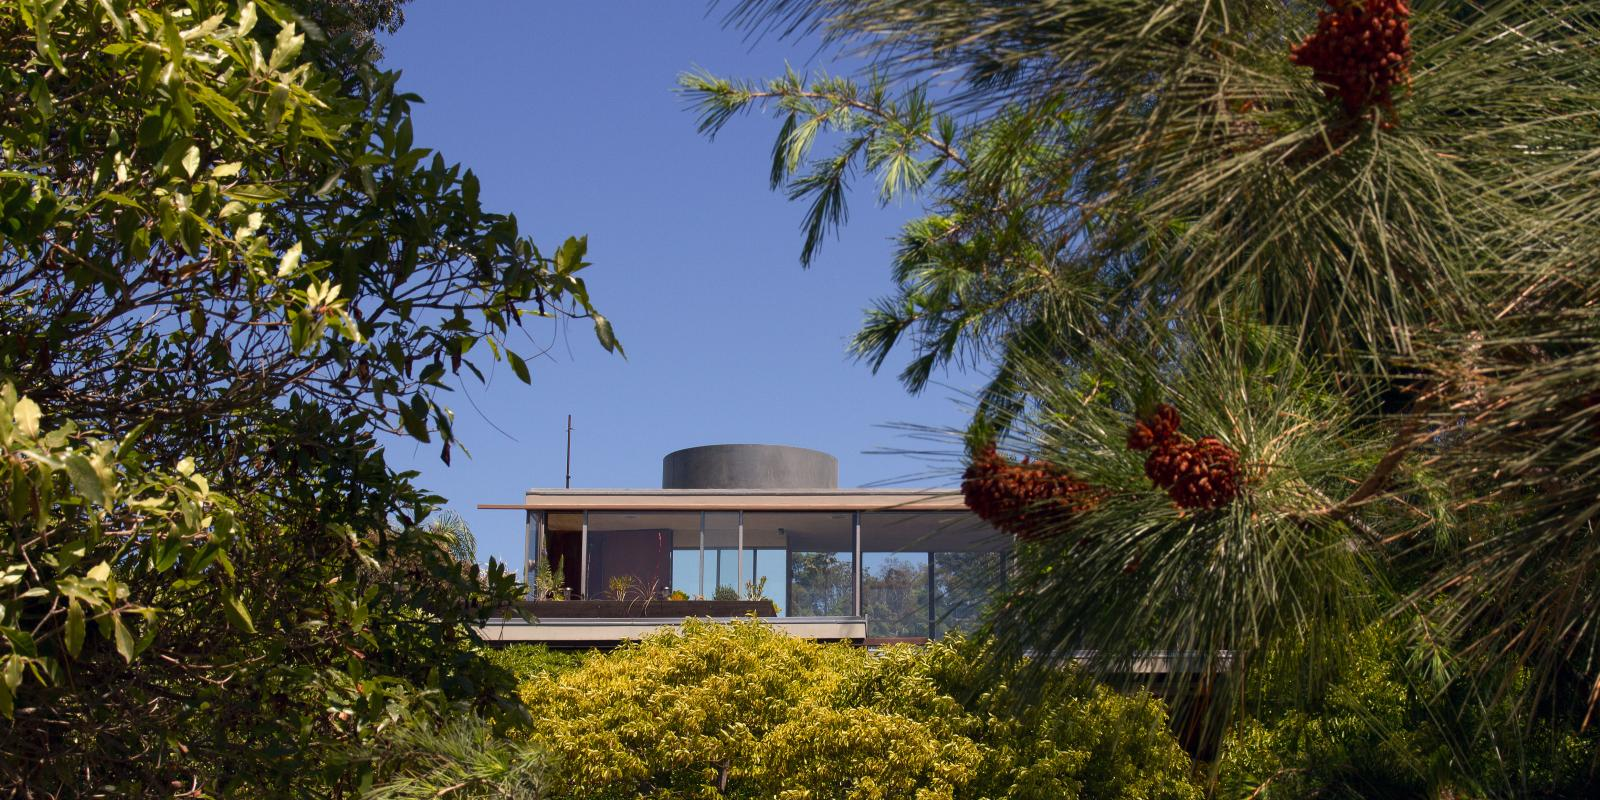 View of the Neutra VDL House through the trees